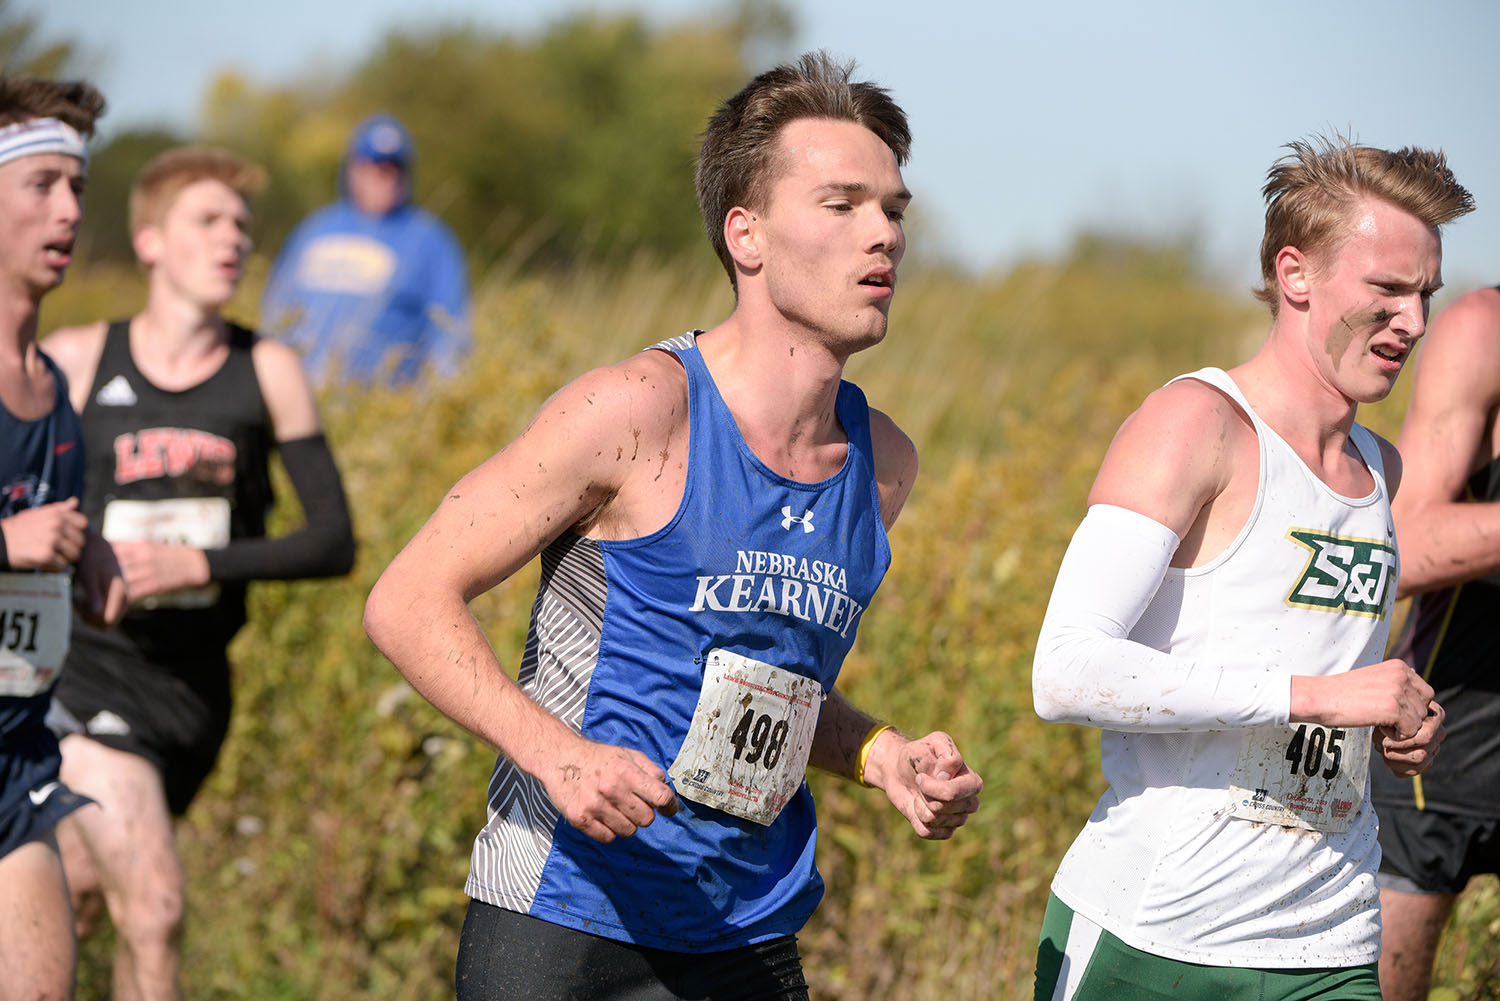 Nate Pierce, center, competed on the UNK cross country and track teams while maintaining a 3.6 GPA. (Steve Woltmann Photography)